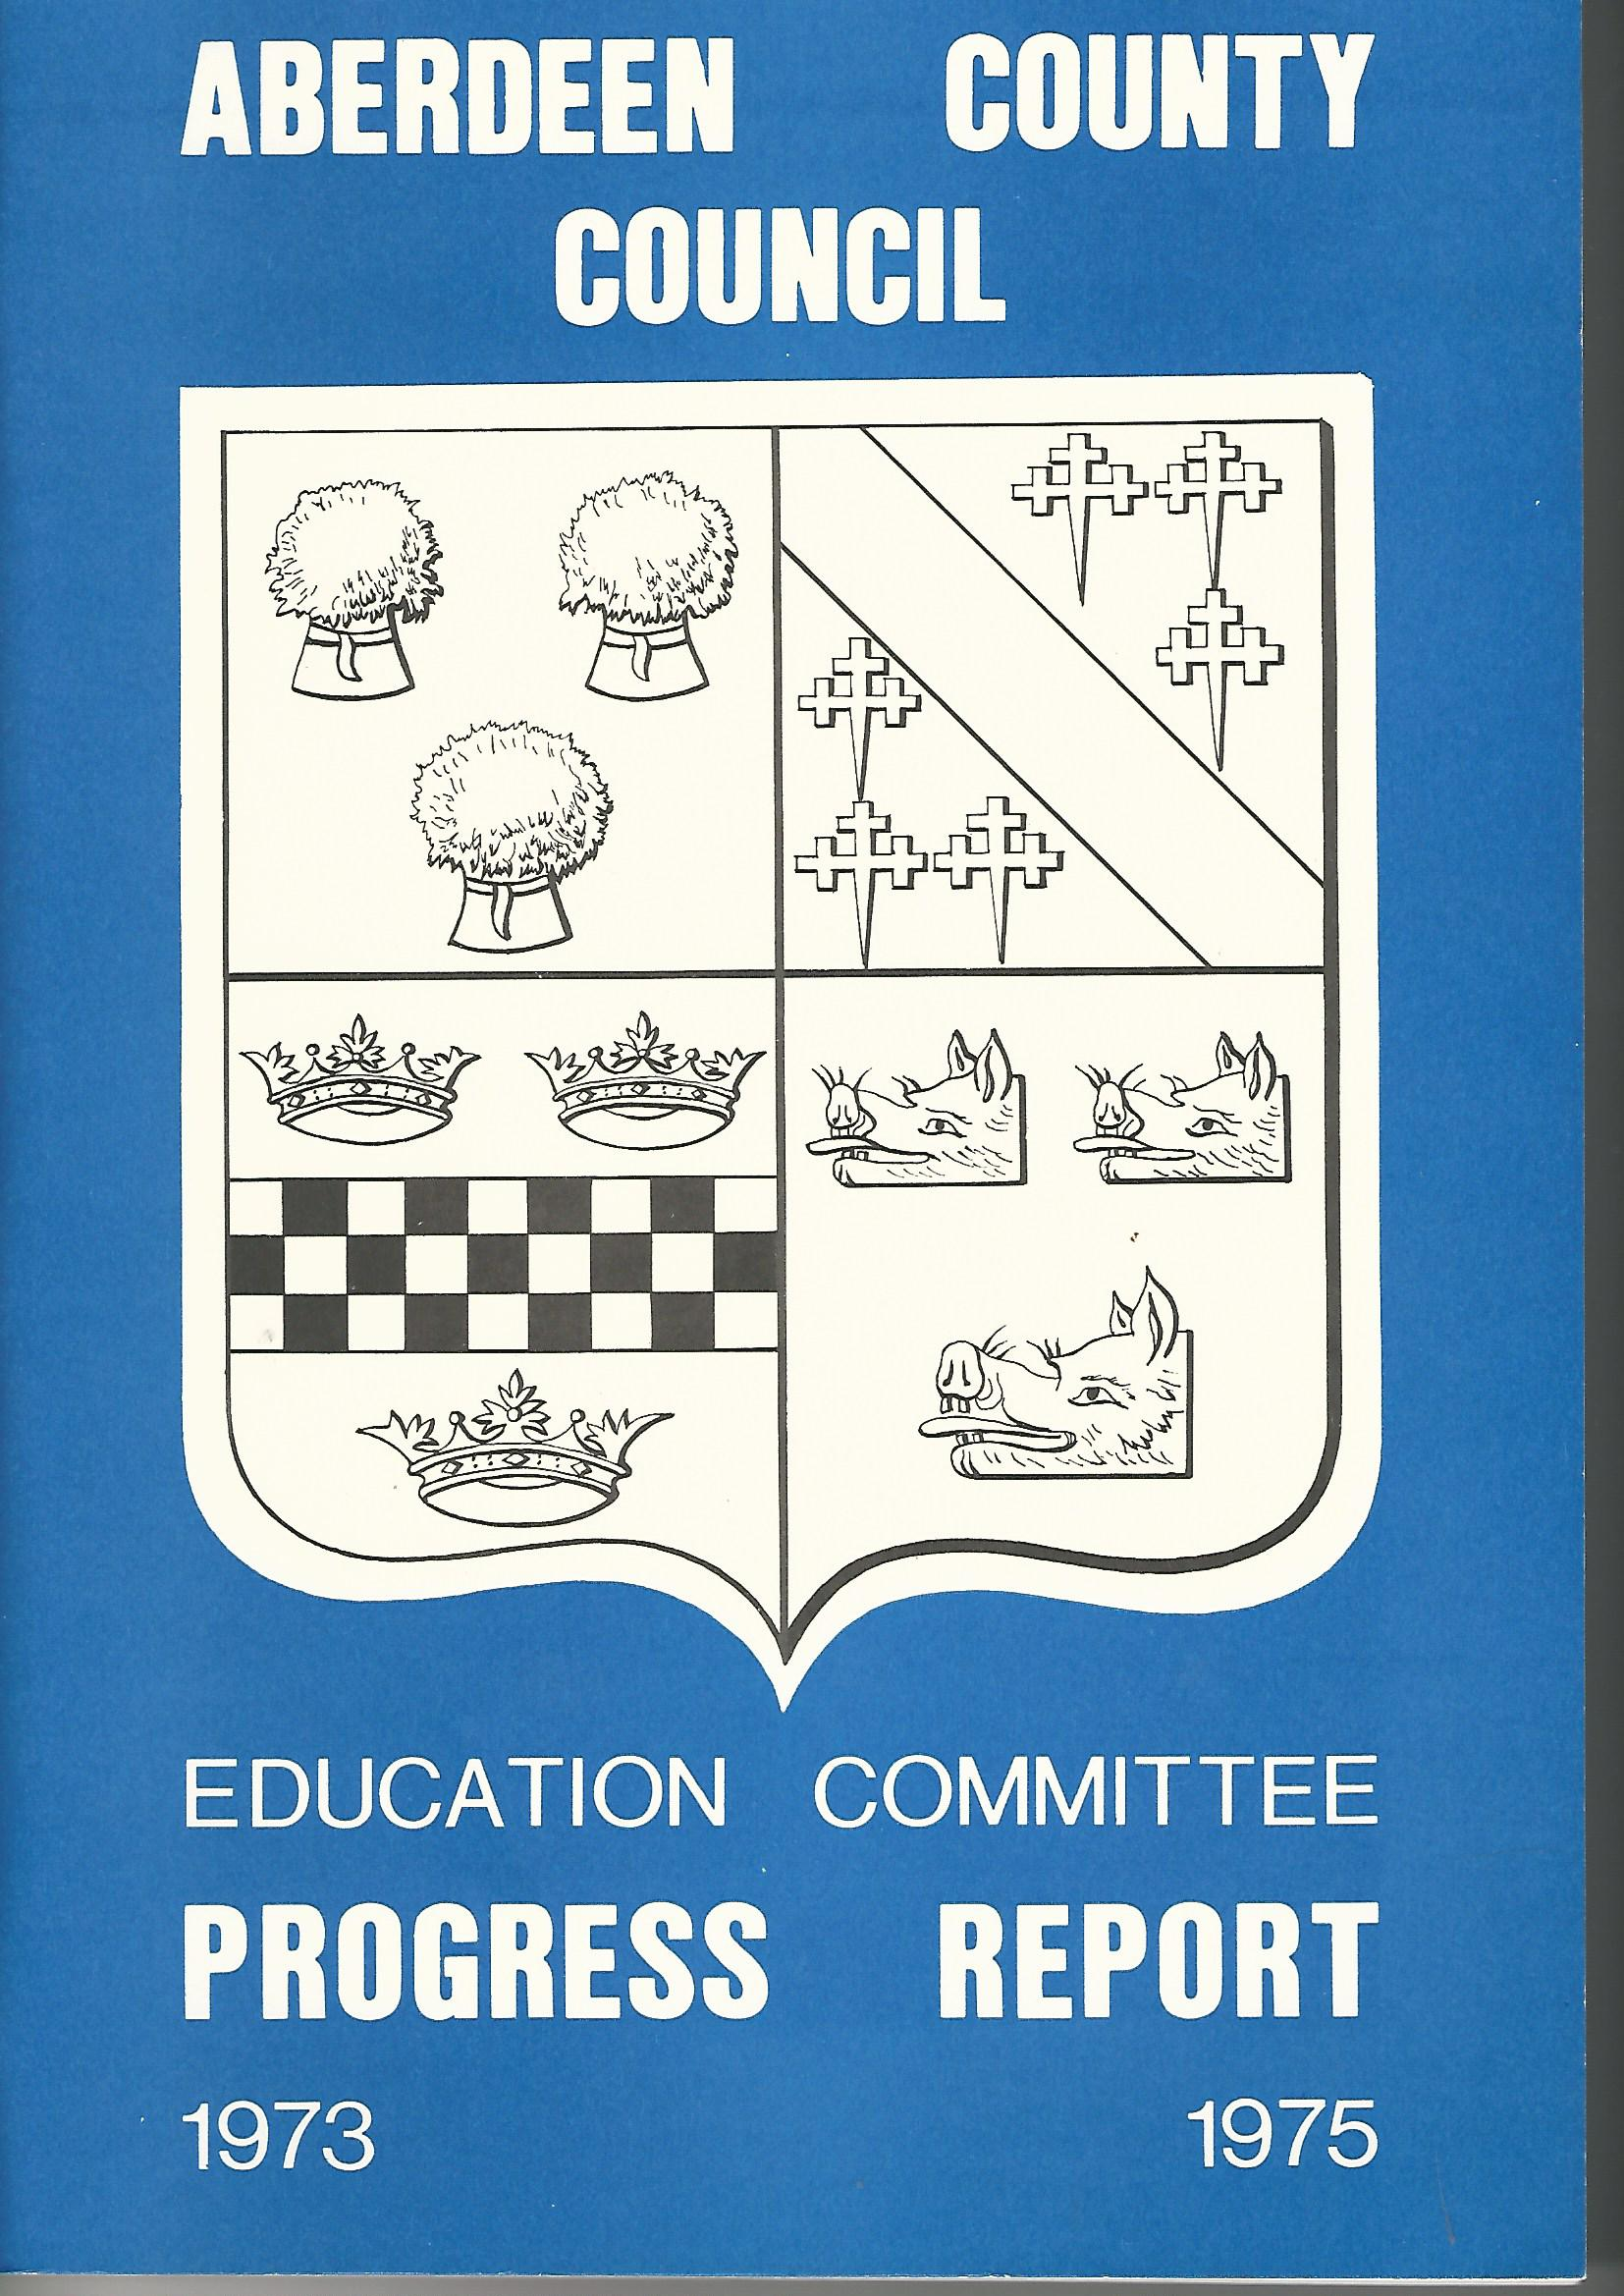 Image for Aberdeen County Council Education Committee Progress Report 1973 - 1975.